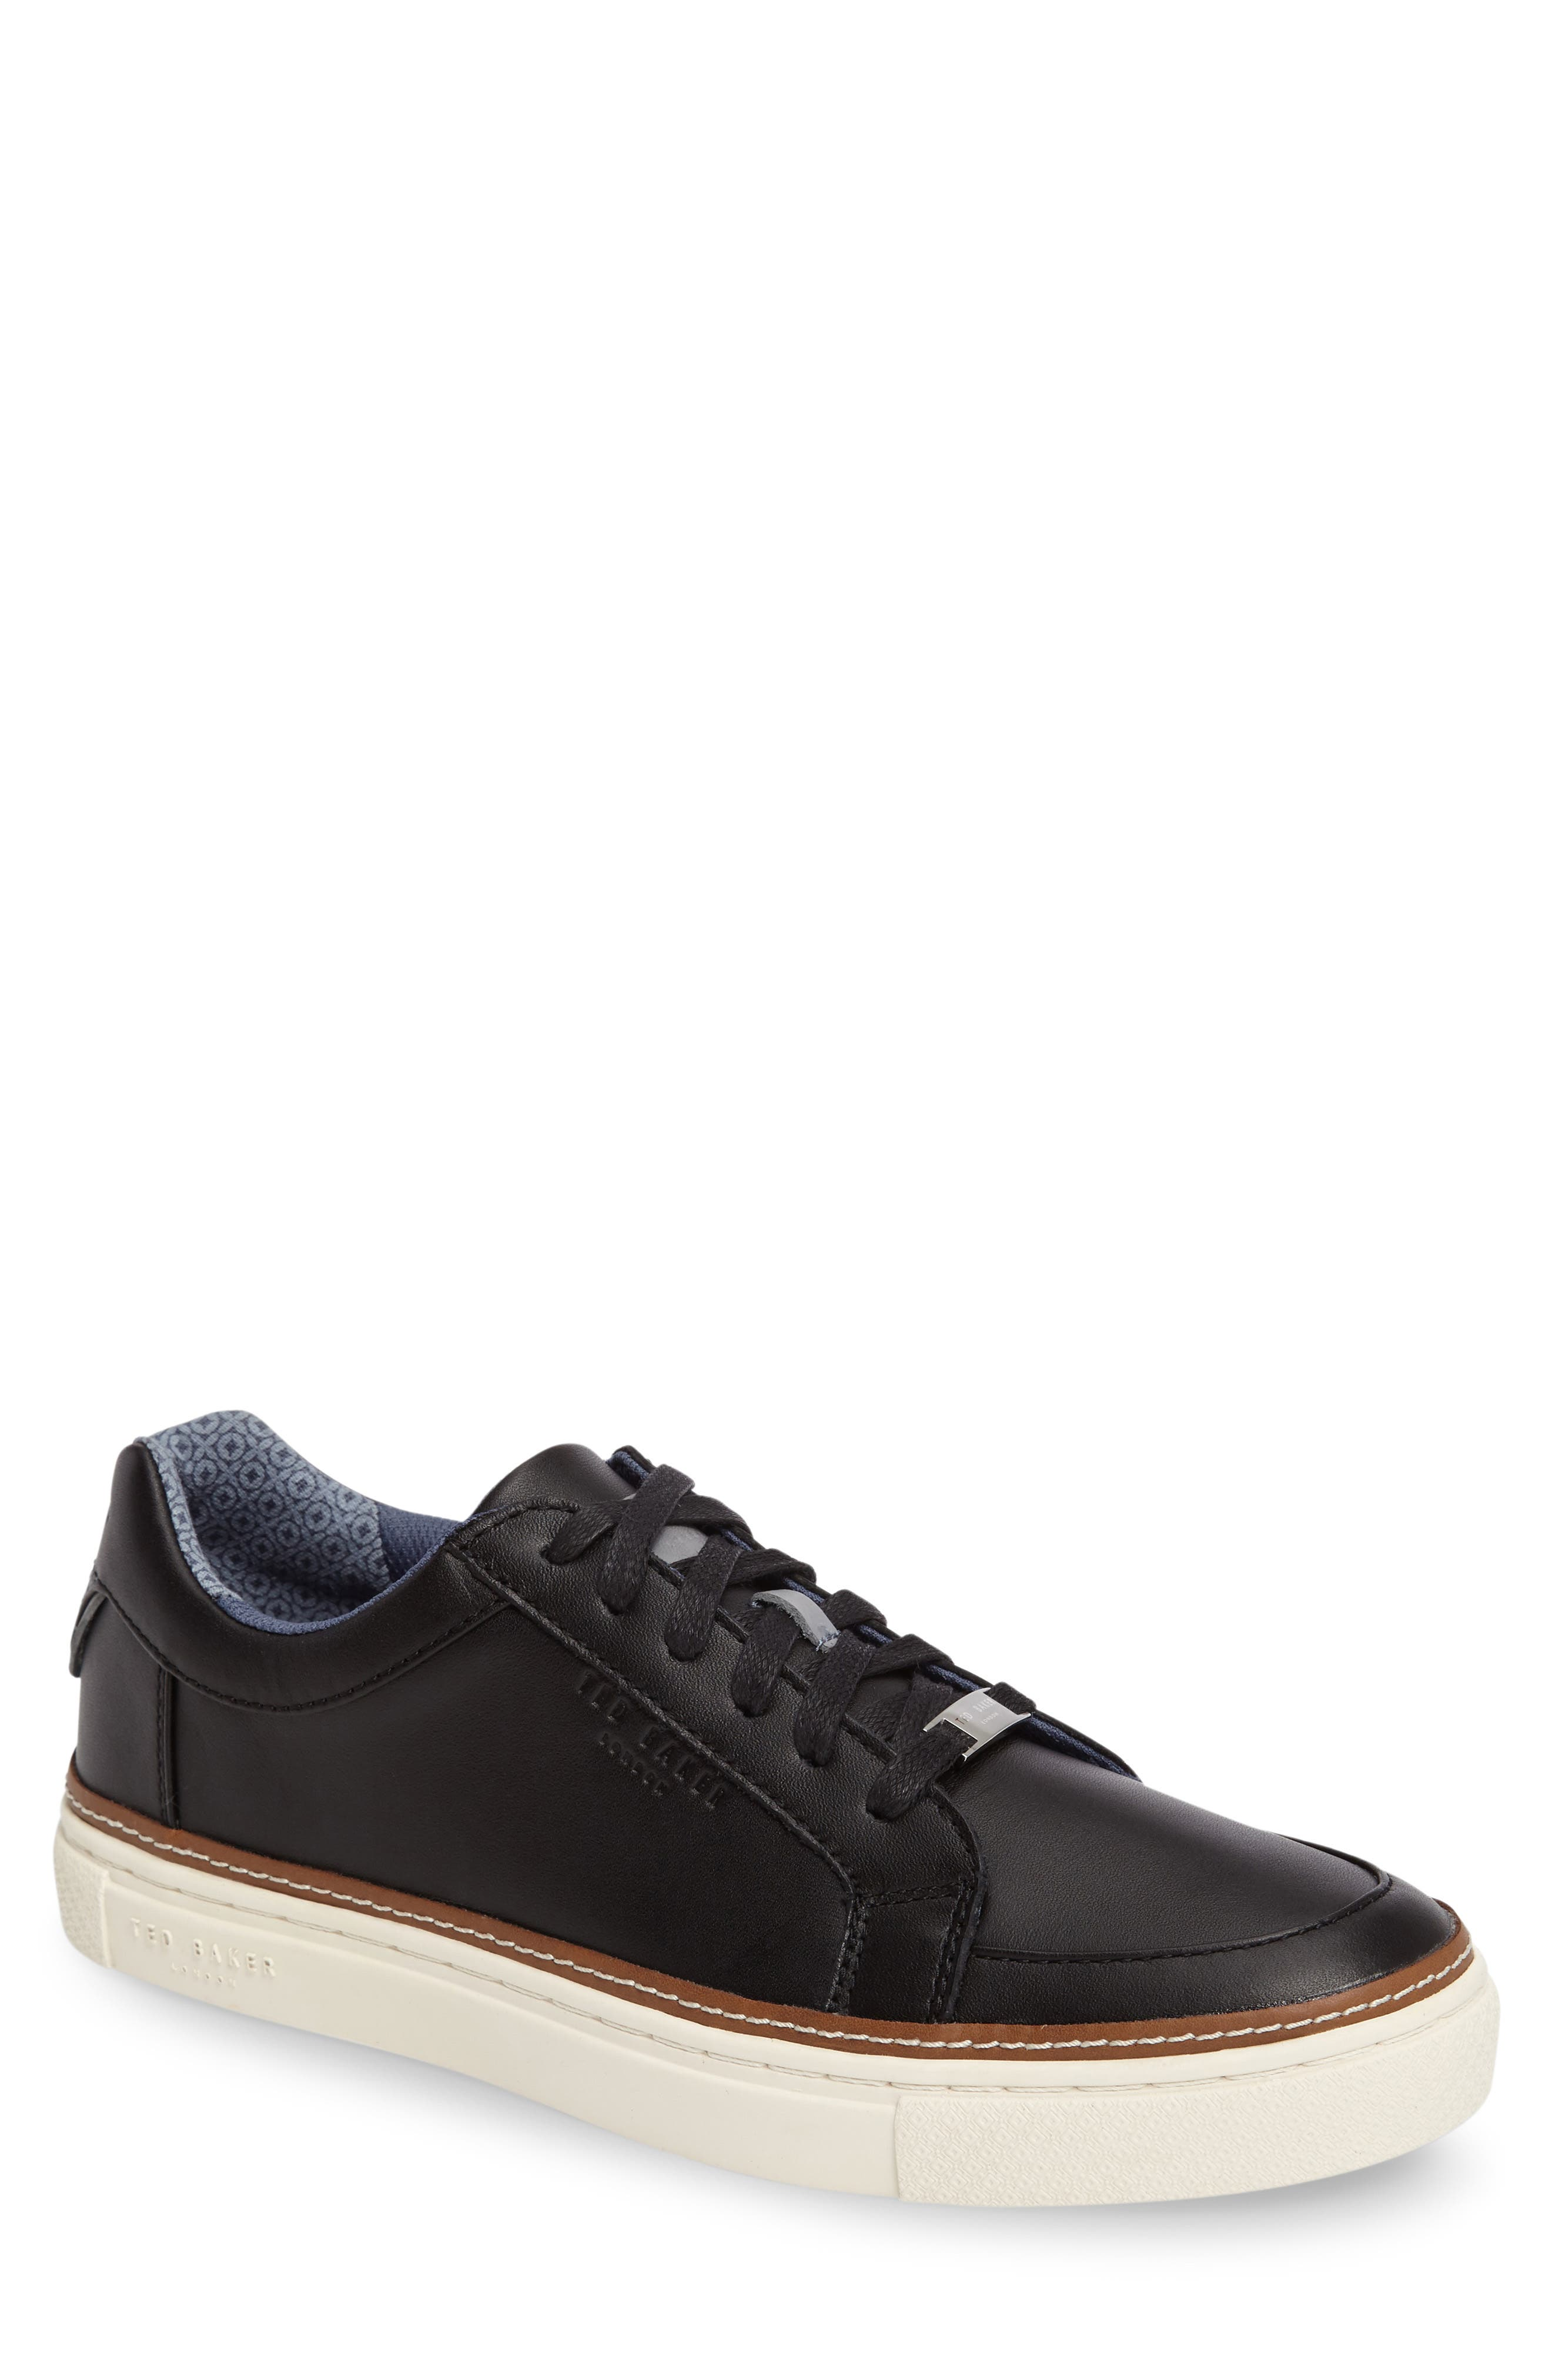 Rouu Sneaker, Main, color, 001